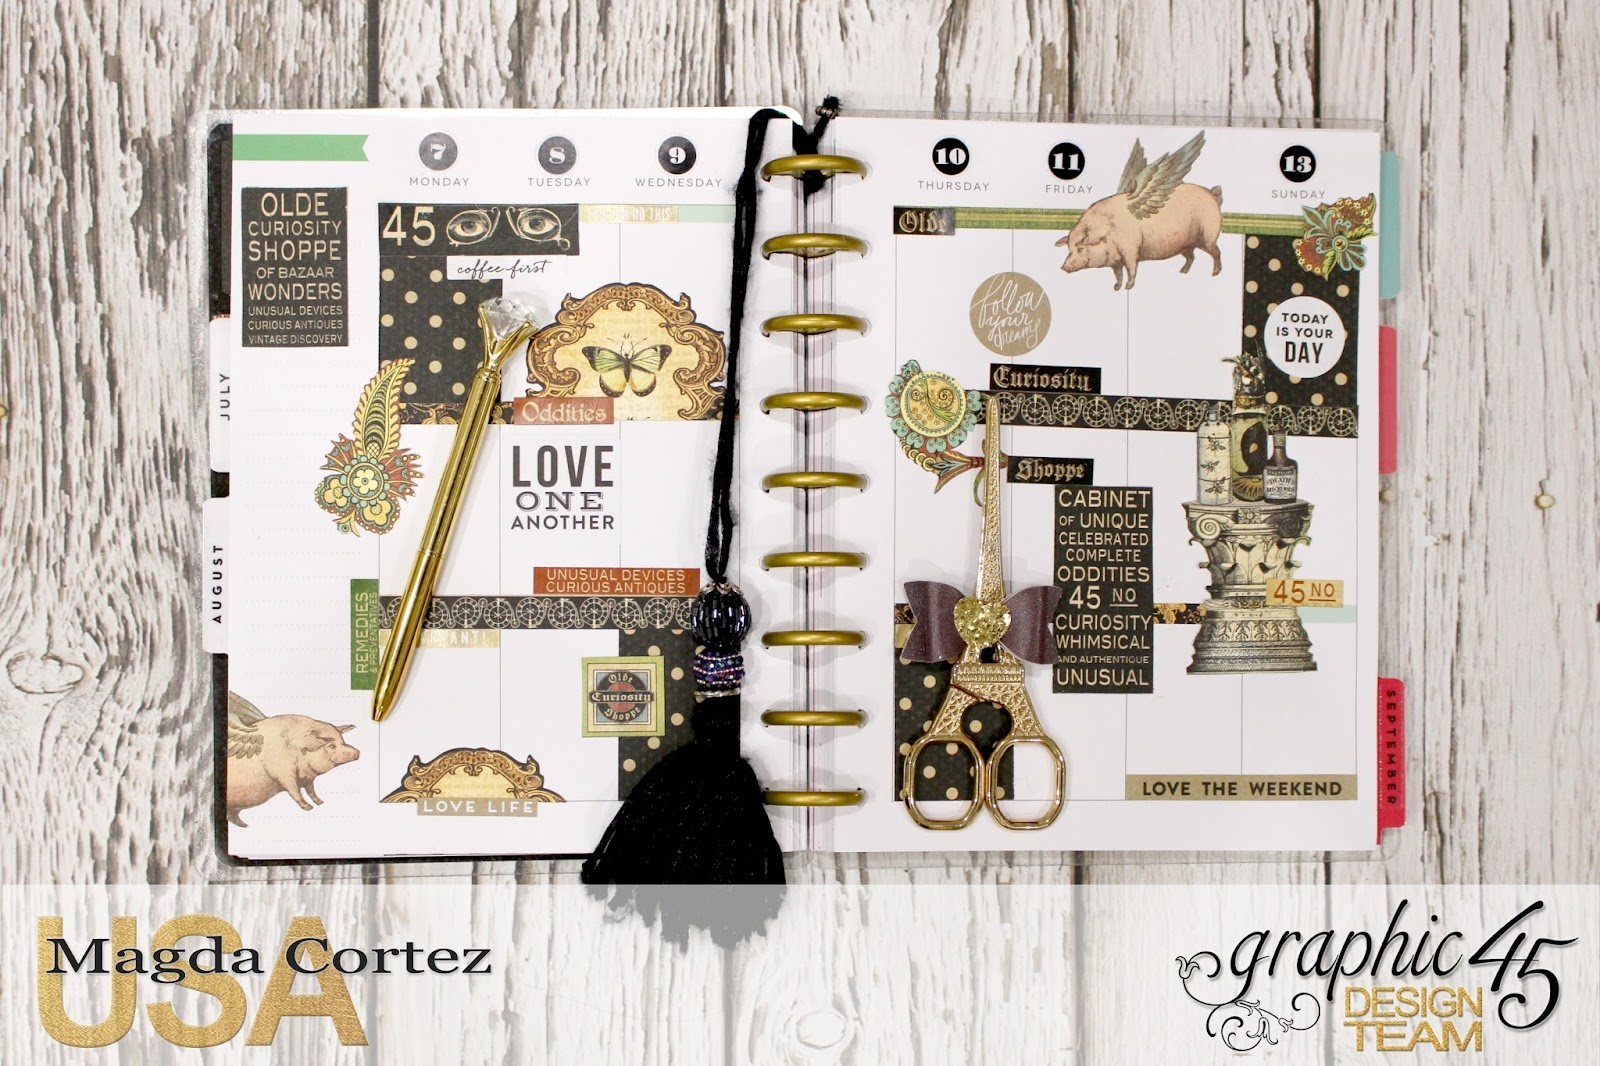 11. My G45 Planner August, Olde Curiosity Shoppe By Magda Cortez, Product By Graphic 45, Photo 11 of 26.jpg